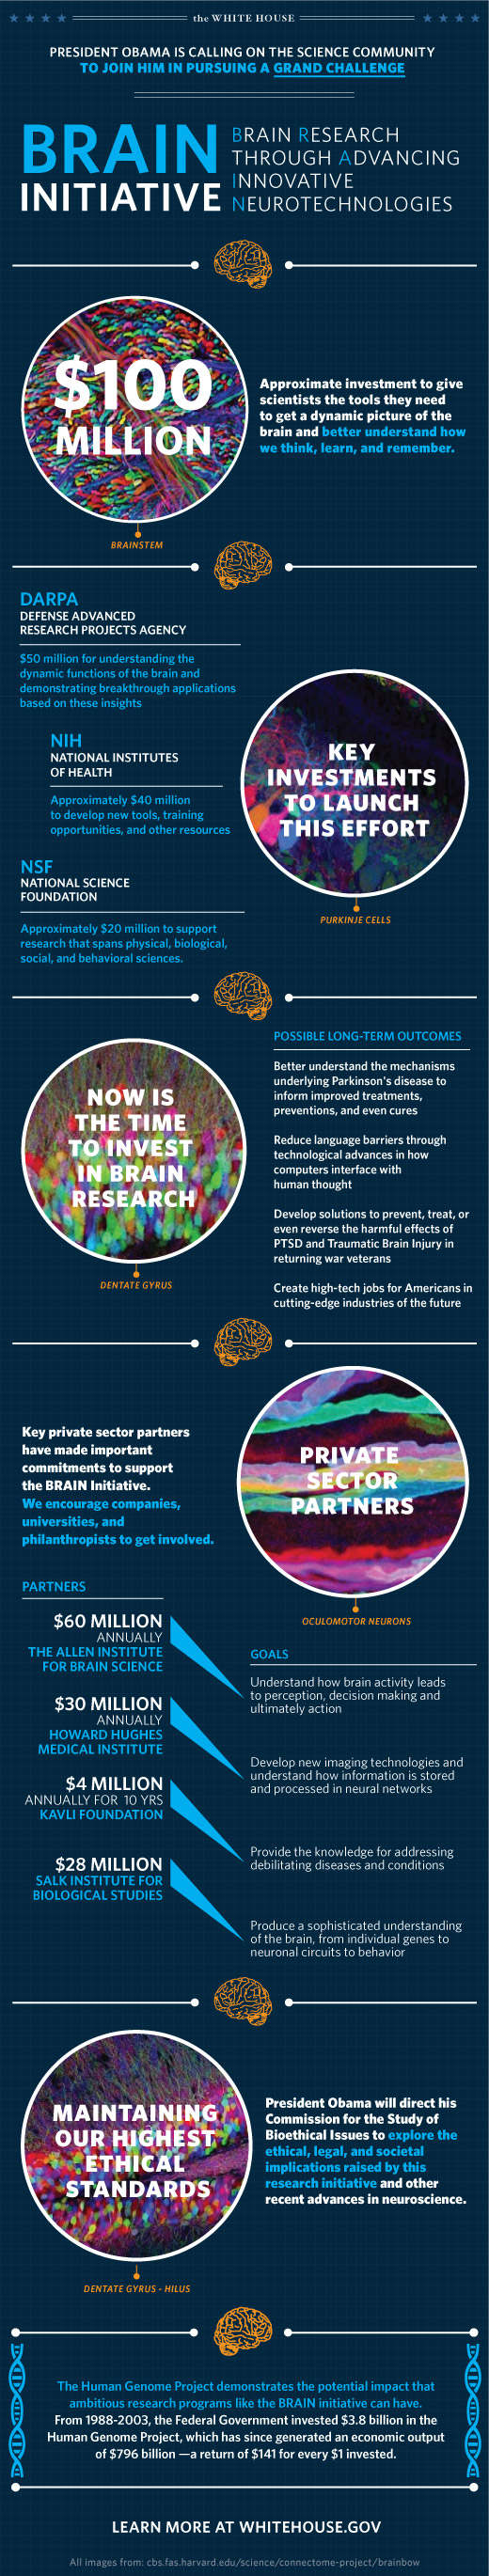 wh_brain_mapping_infographic_2013_blog.jpg